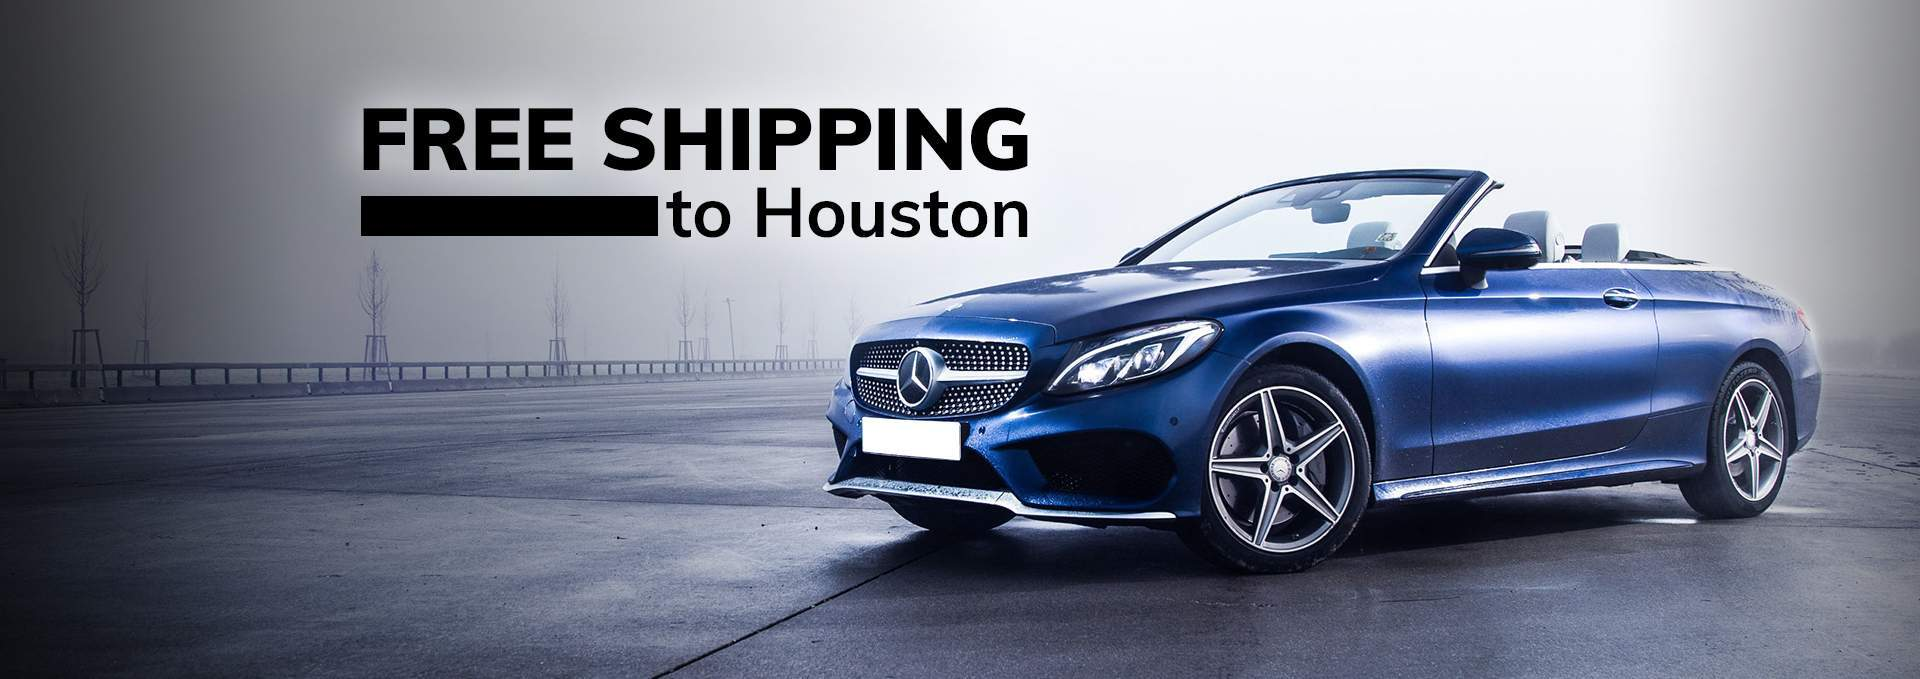 Free Shipping to Houston